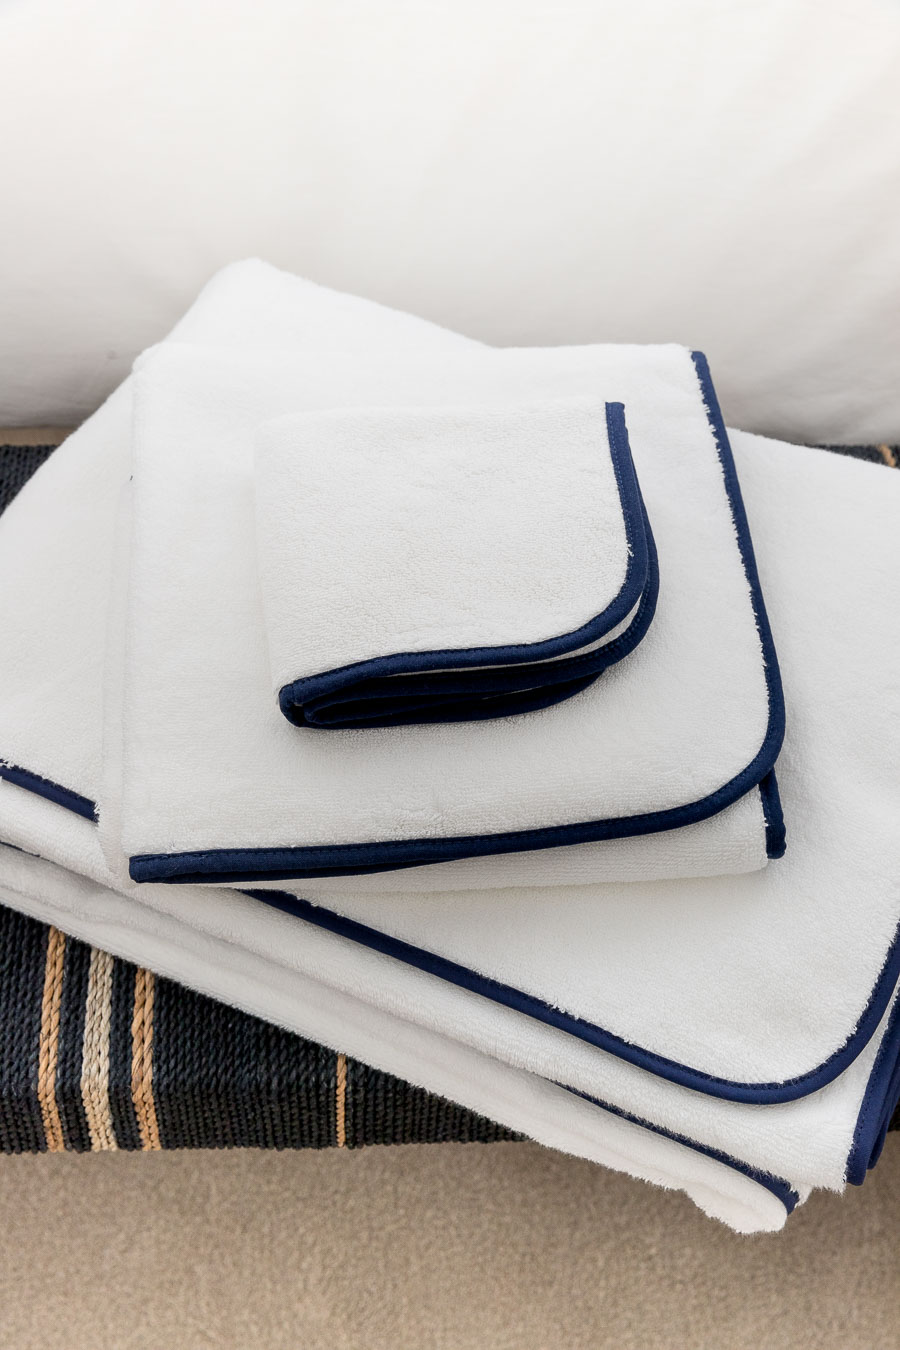 Super soft, large towels with a navy edge